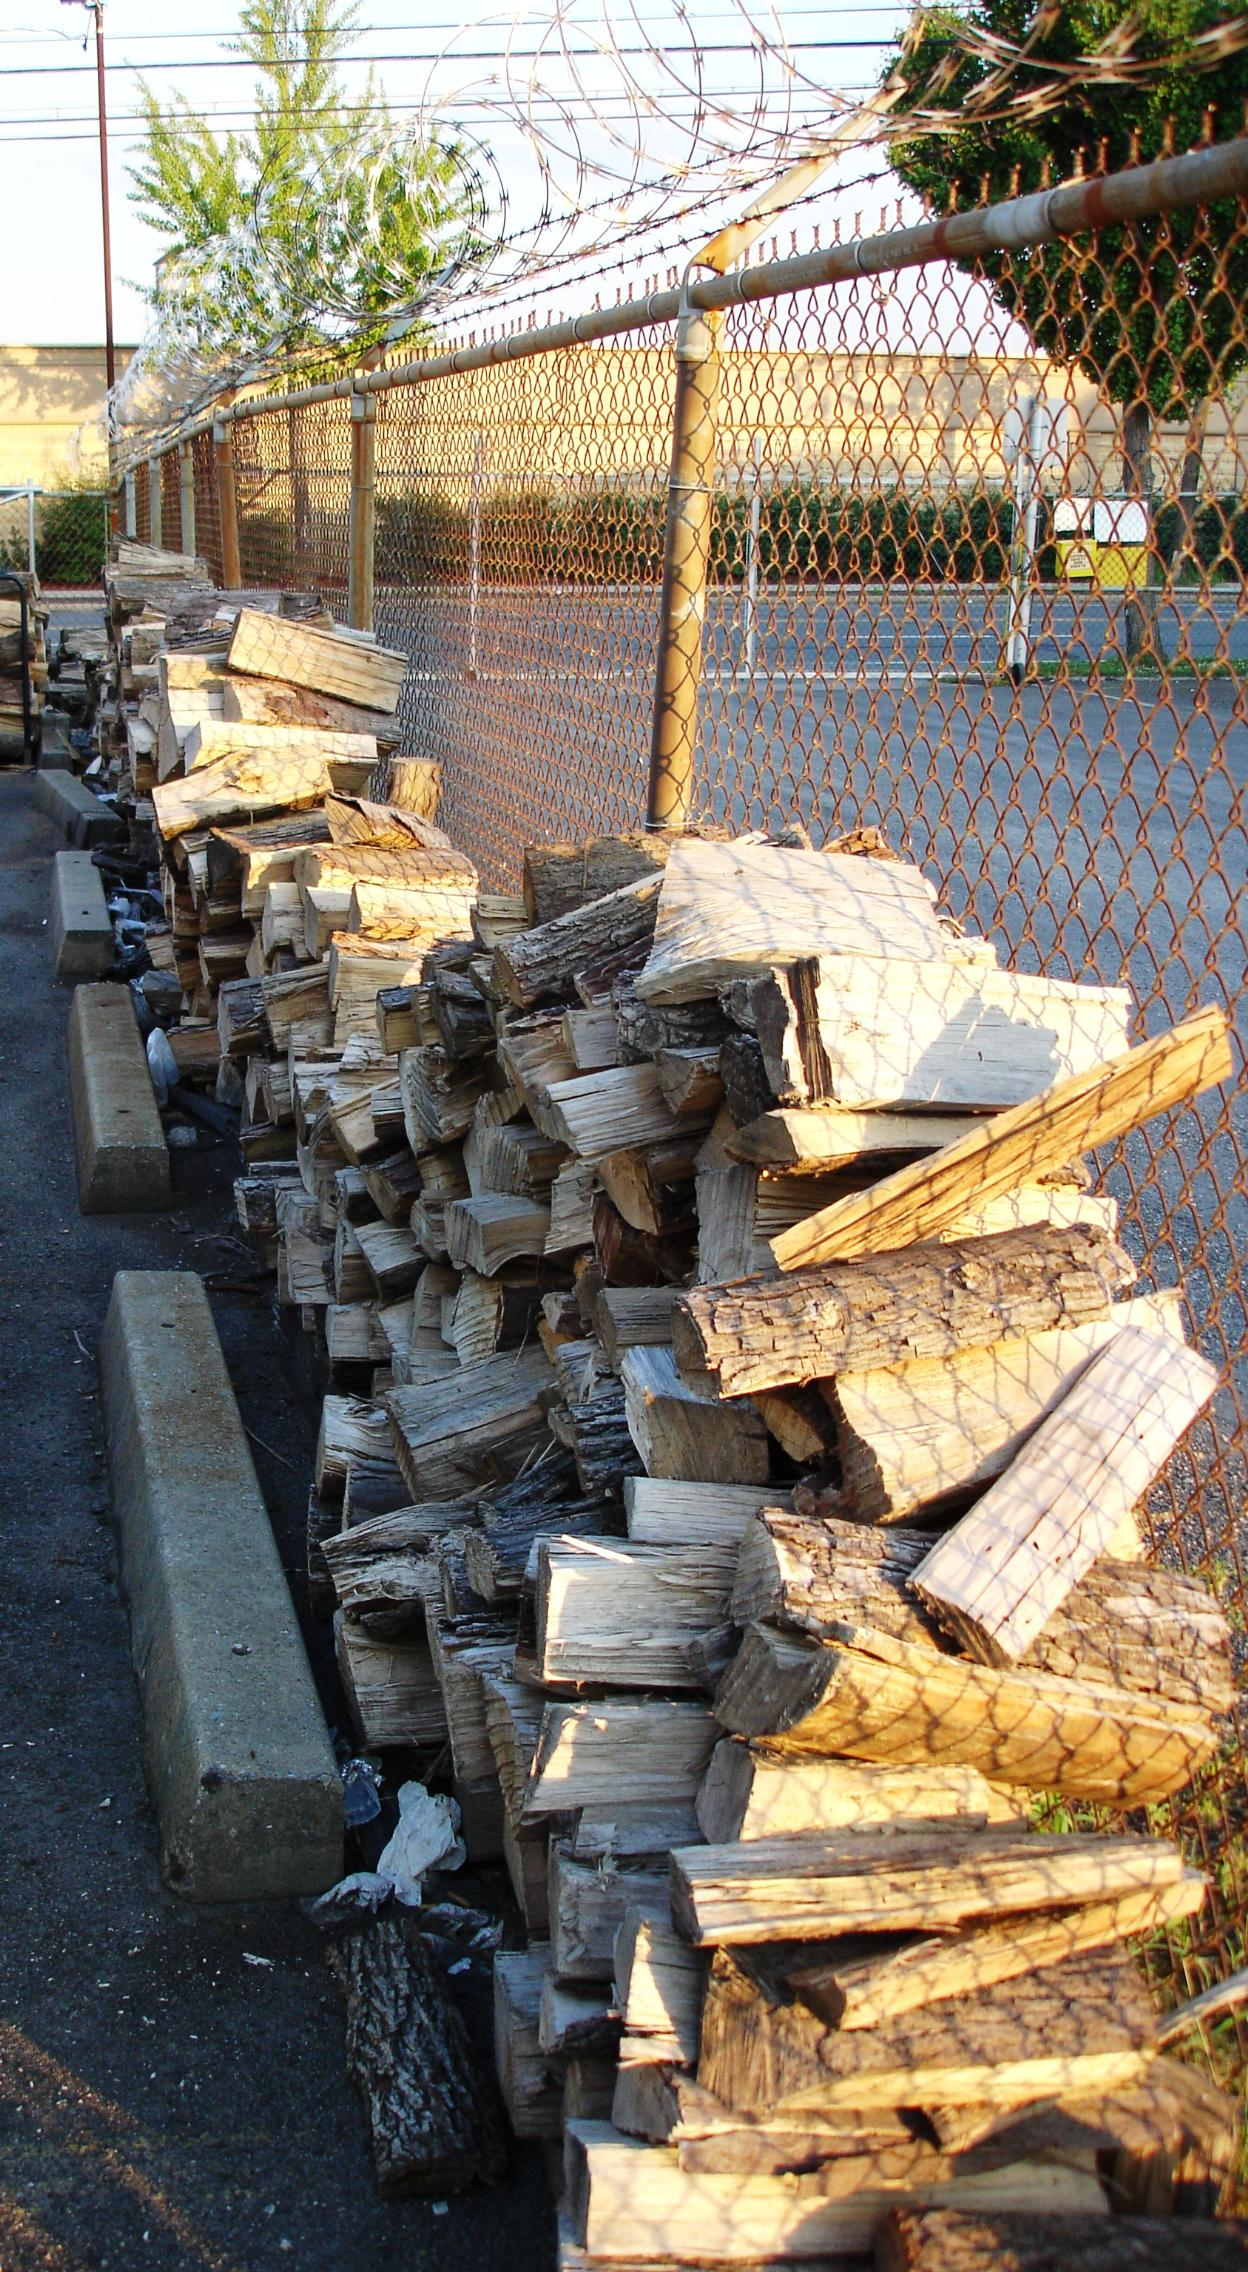 You can survey Lucy's wood pile as you exit your car.